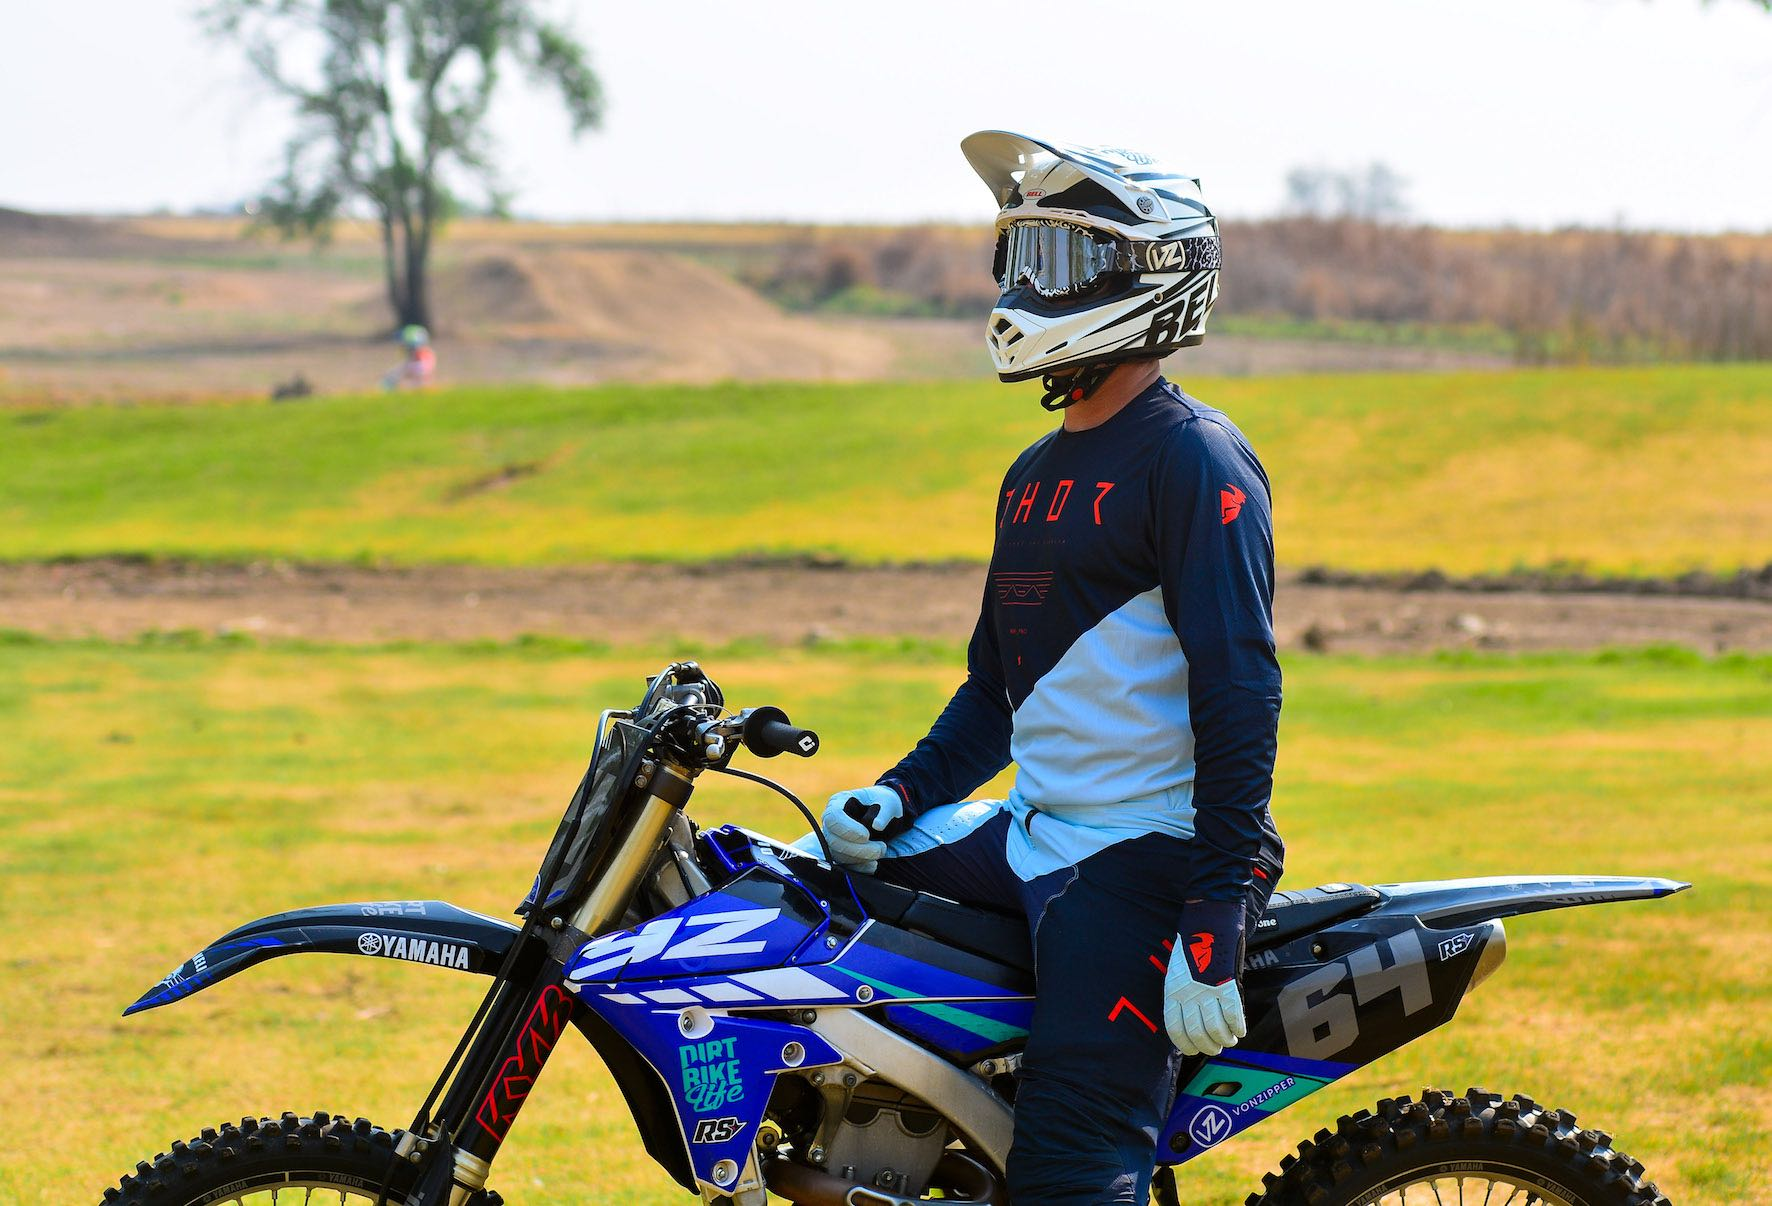 We test the all new 2019 Thor MX Prime Pro racewear